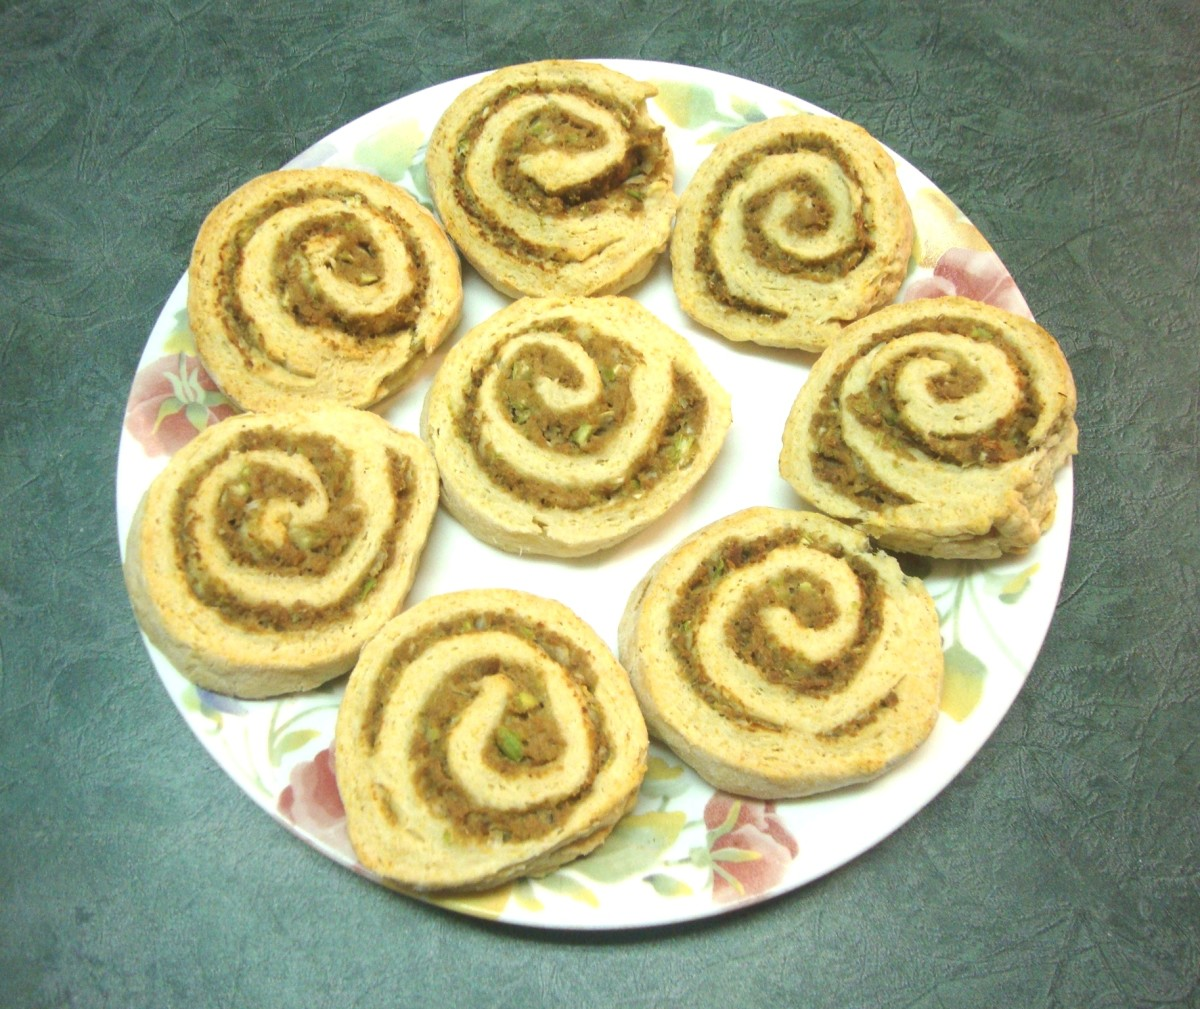 Turkey-Filled Biscuit Spirals